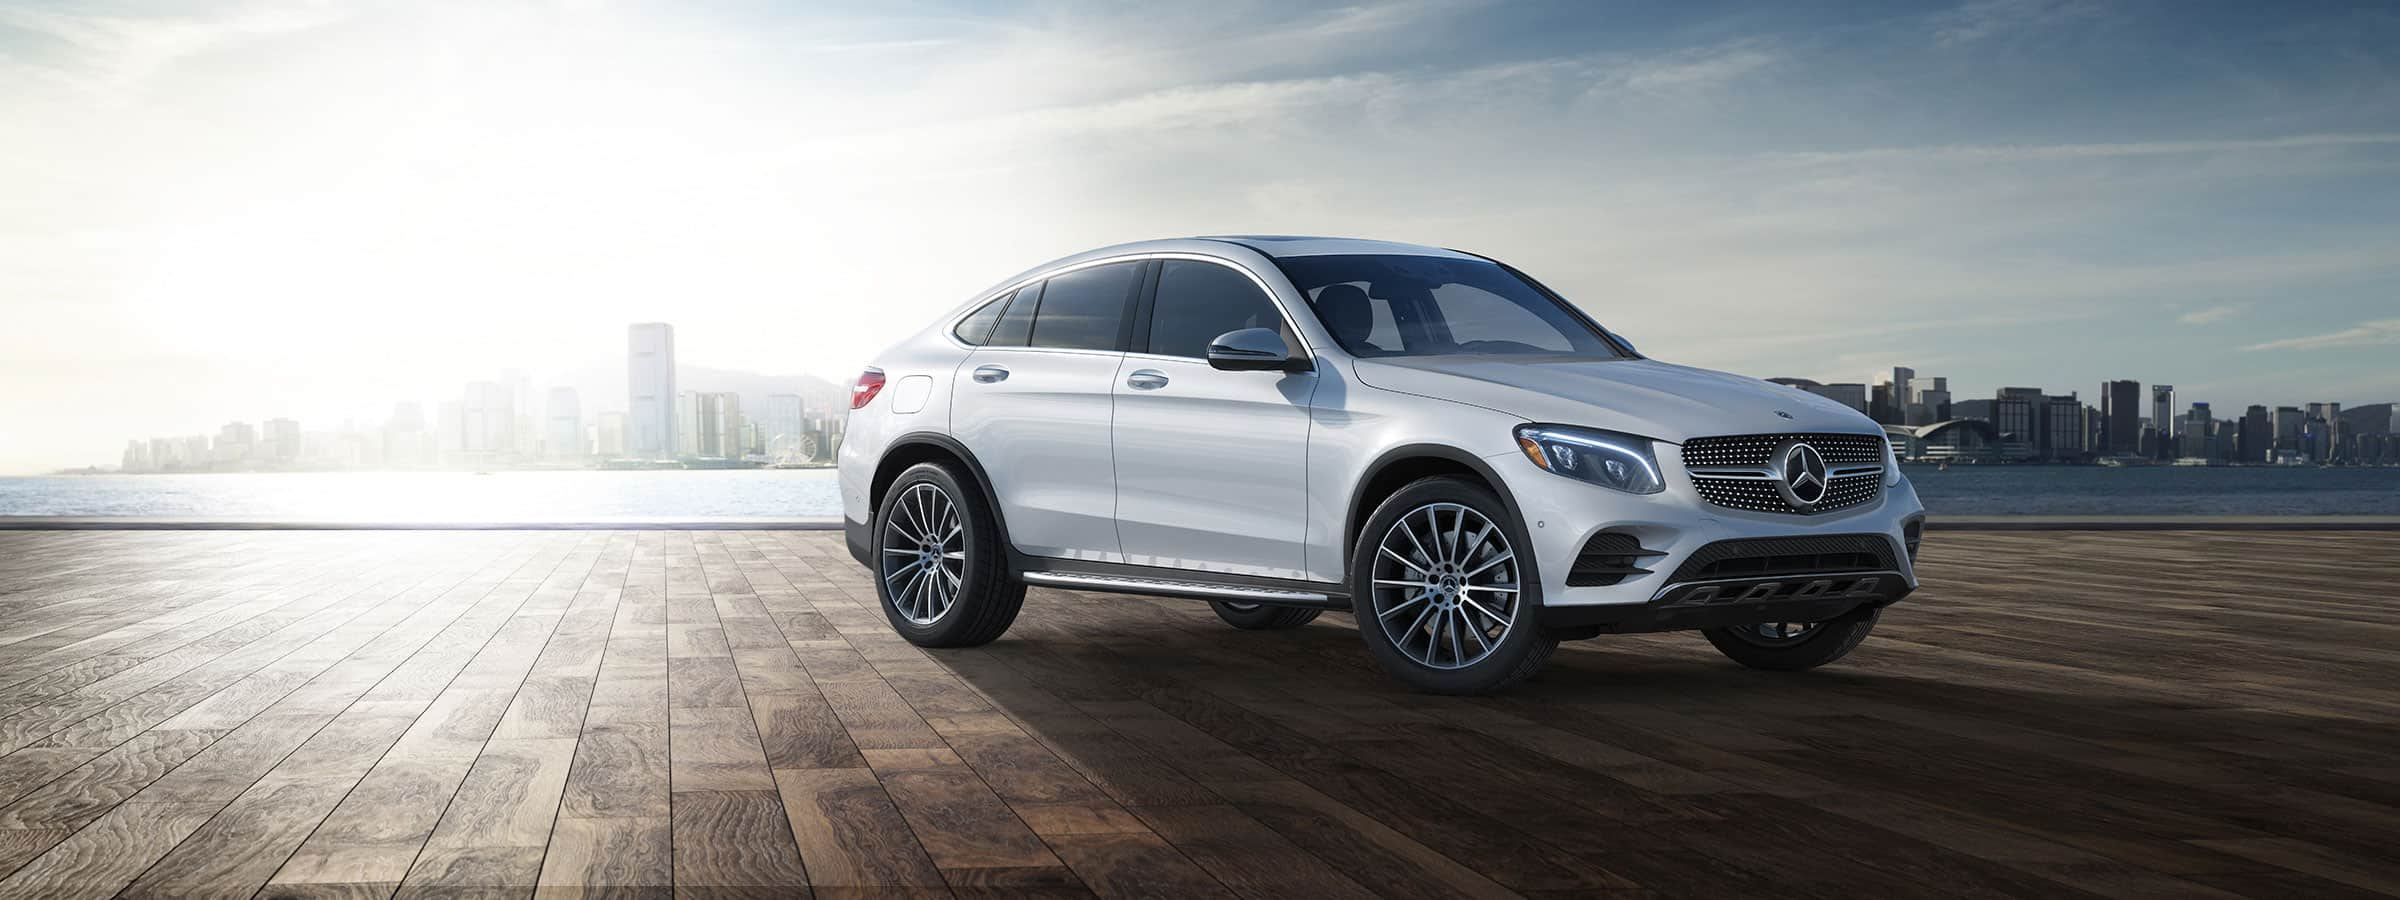 The 2019 GLC Coupe